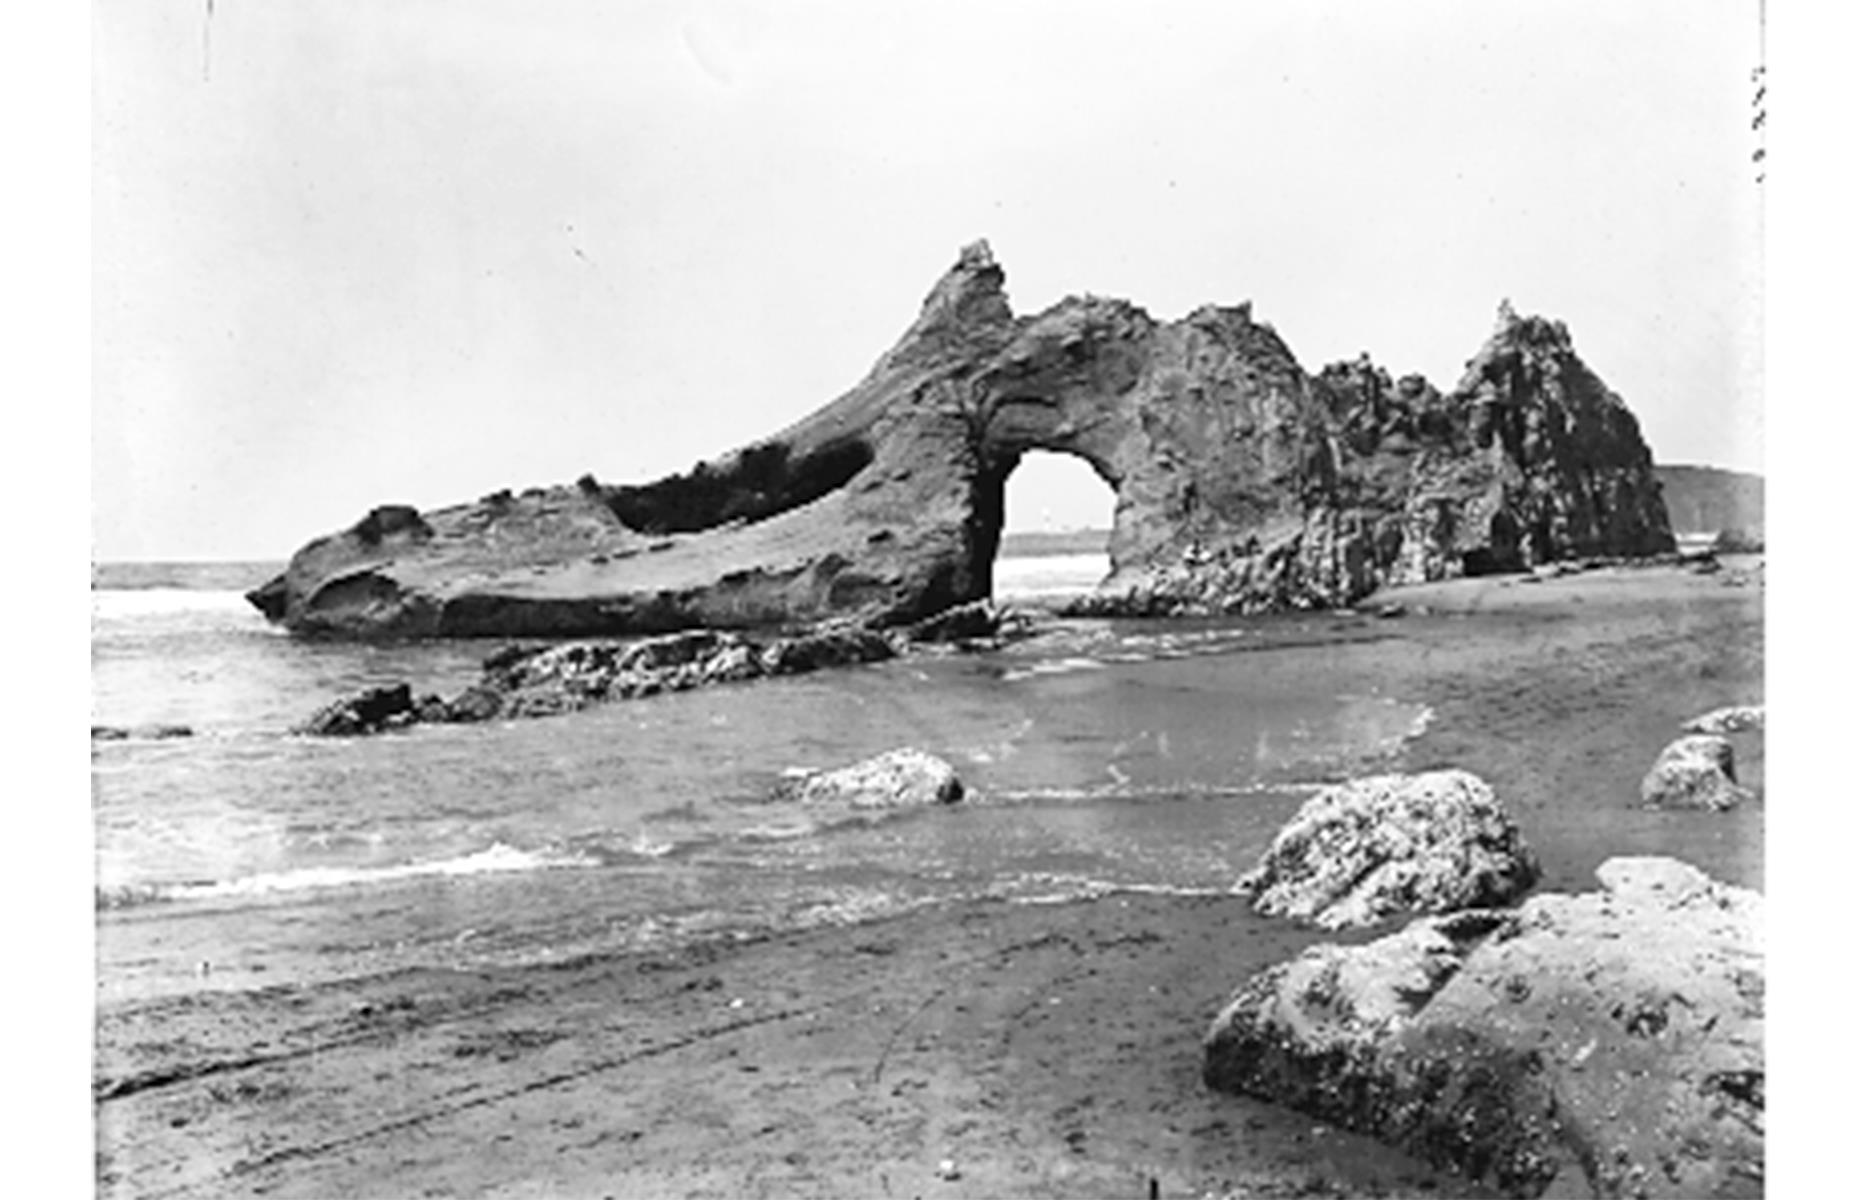 Slide 18 of 31: Jump-Off Joe is another natural Oregon landmark that didn't stand the test of time. The arching sea stack rose just off the shore at Newport's Nye Beach on Oregon's Central Coast and was a popular attraction in the 19th century. It's pictured here in 1910, a mere six years before it crumbled into the sea.